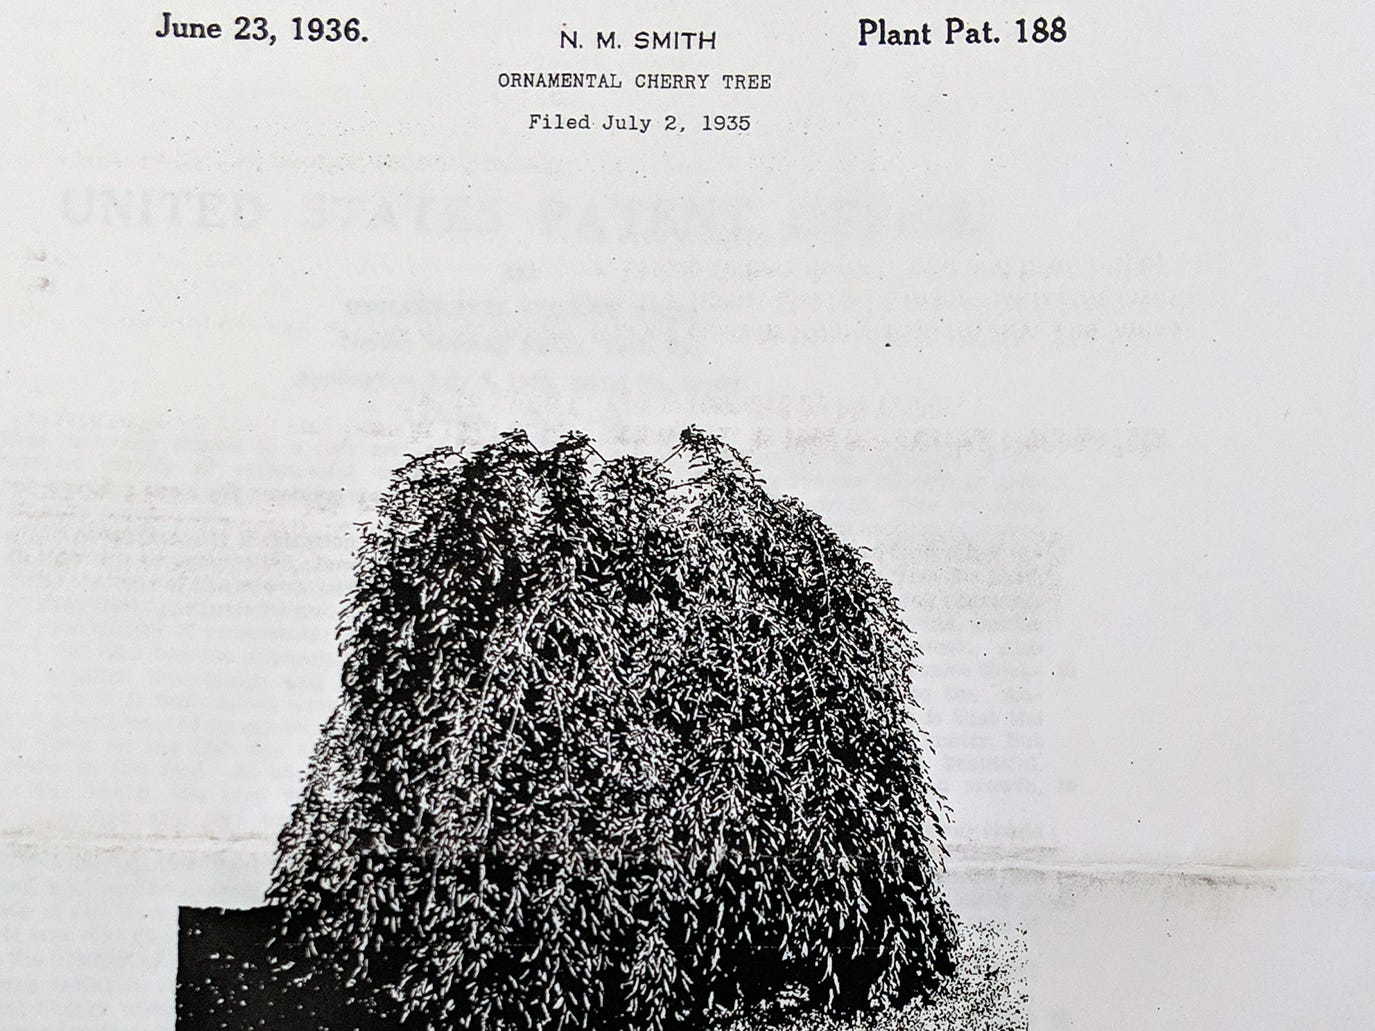 The cover of the document that shows a picture of the tree that received a patent in June 1936.